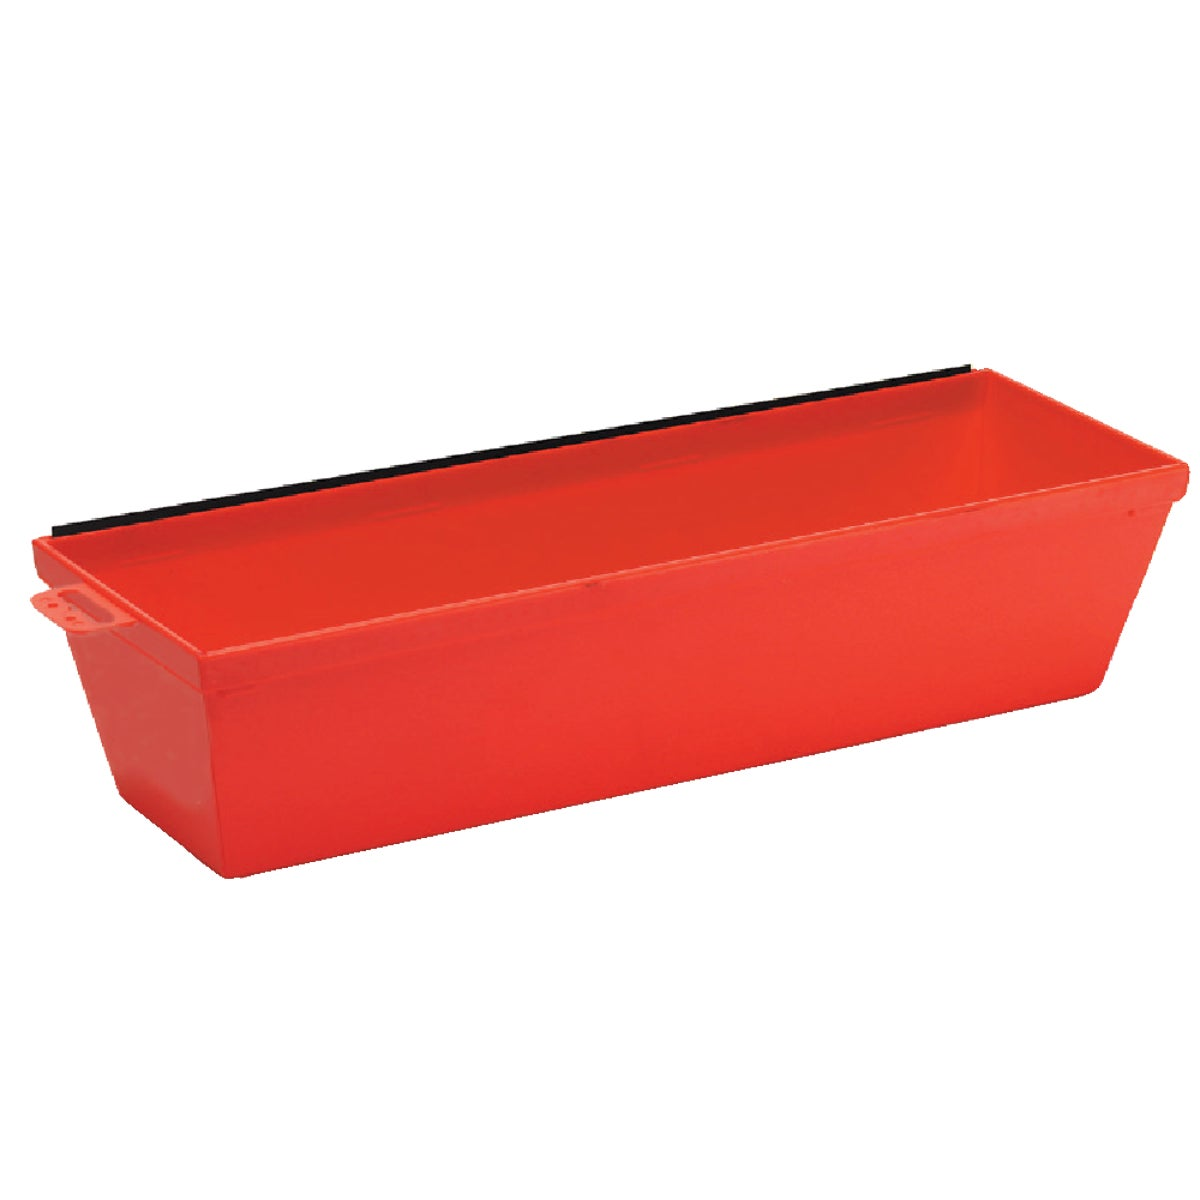 "12"" PLASTIC MUD PAN - 16114 by Marshalltown Trowel"